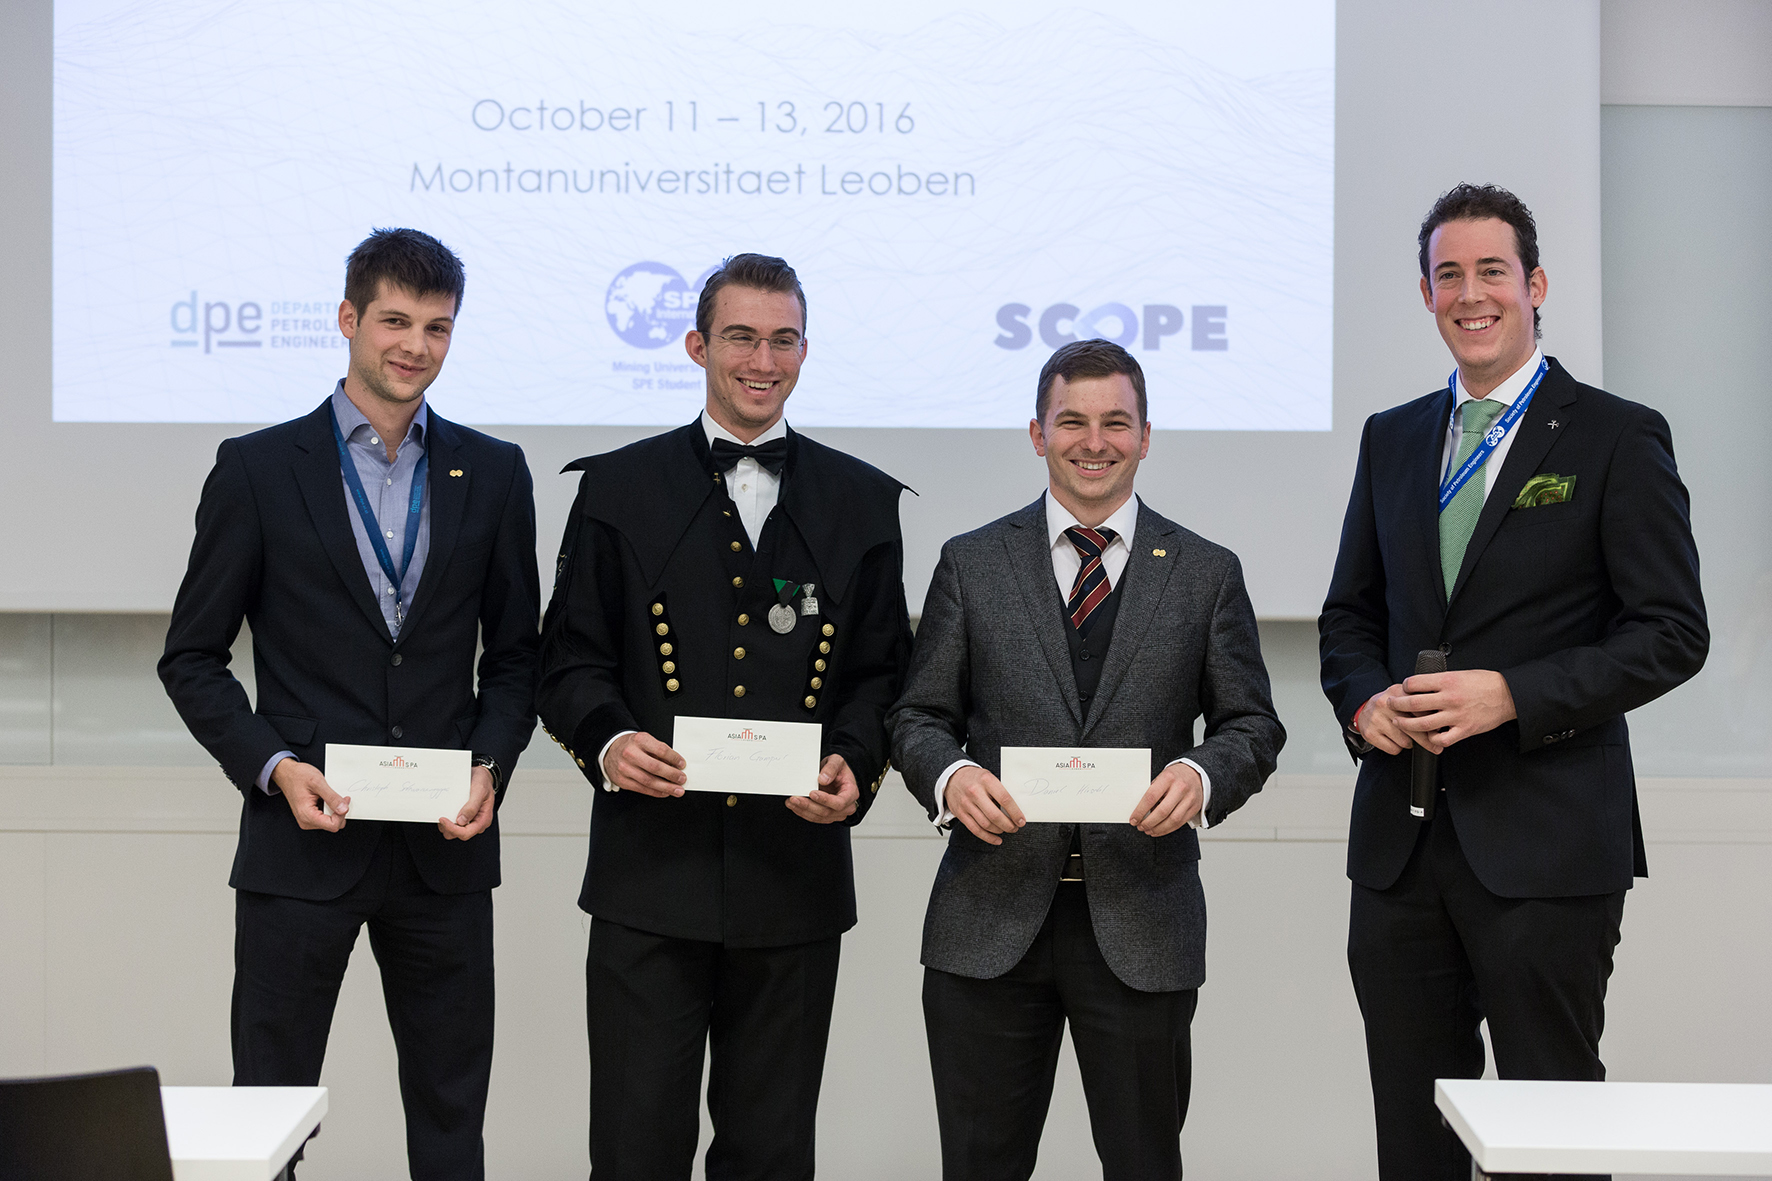 Mining University of Leoben SPE Student Chapter President Oliver P. Spenger together with the SCOPE Organizing Committee Daniel Hirschl, Florian Gamperl and Christoph Schwarzenegger.